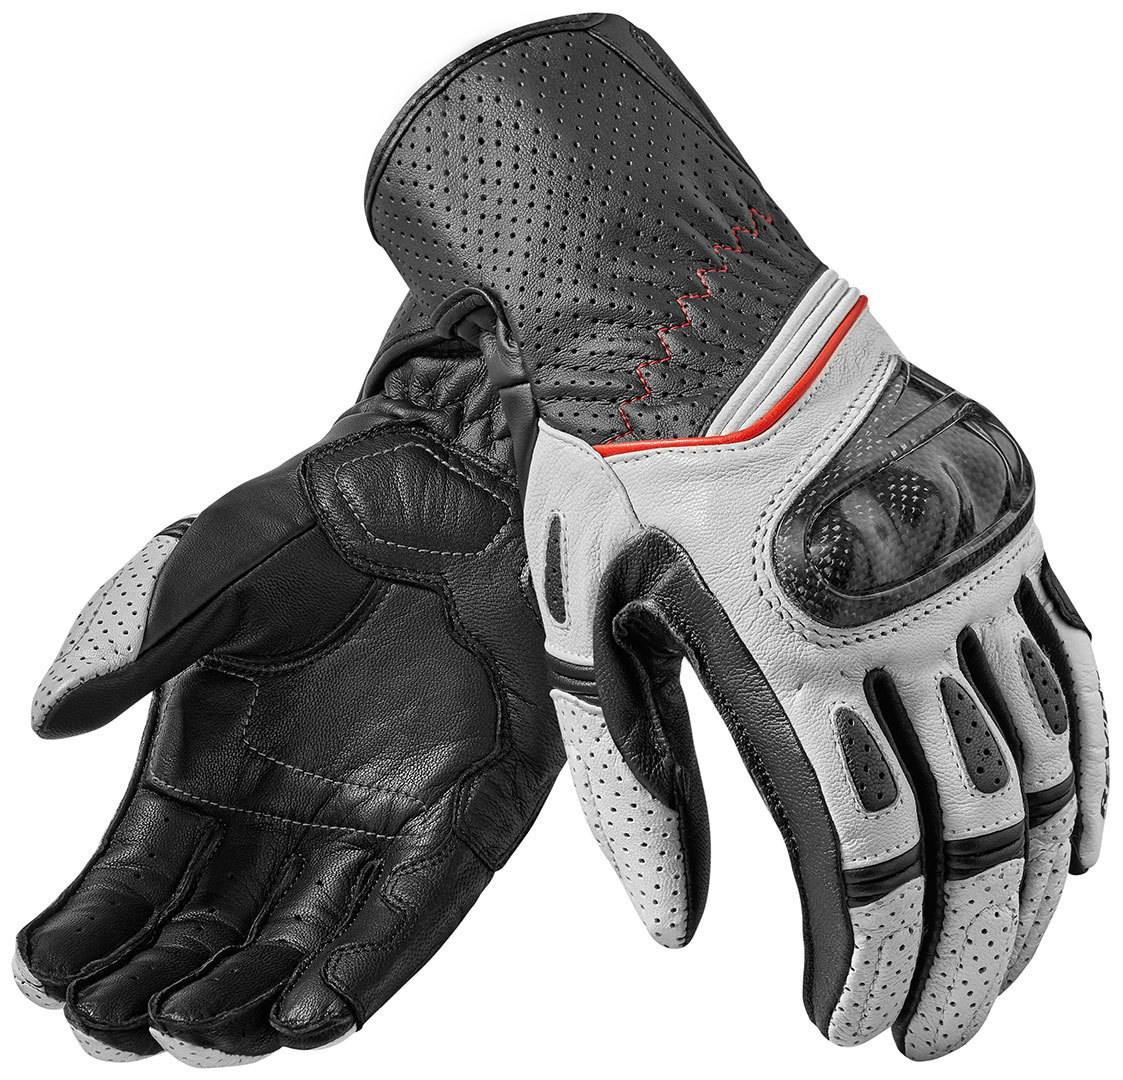 Revit Chevron 2 Guantes Blanco/Negro XL